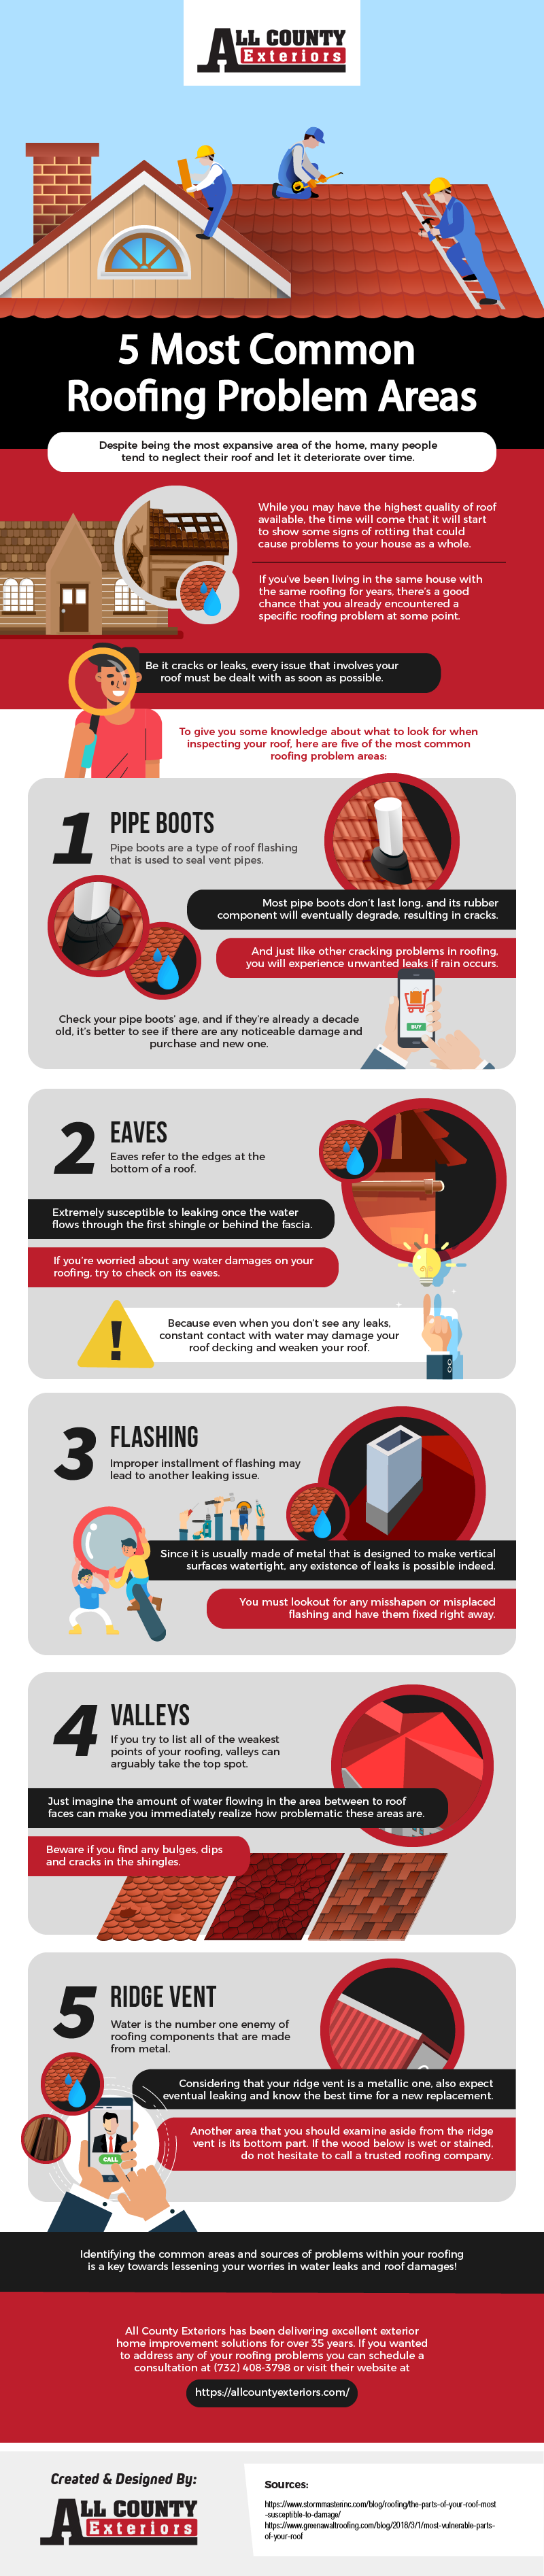 5 Most Common Roofing Problem Areas Infographic